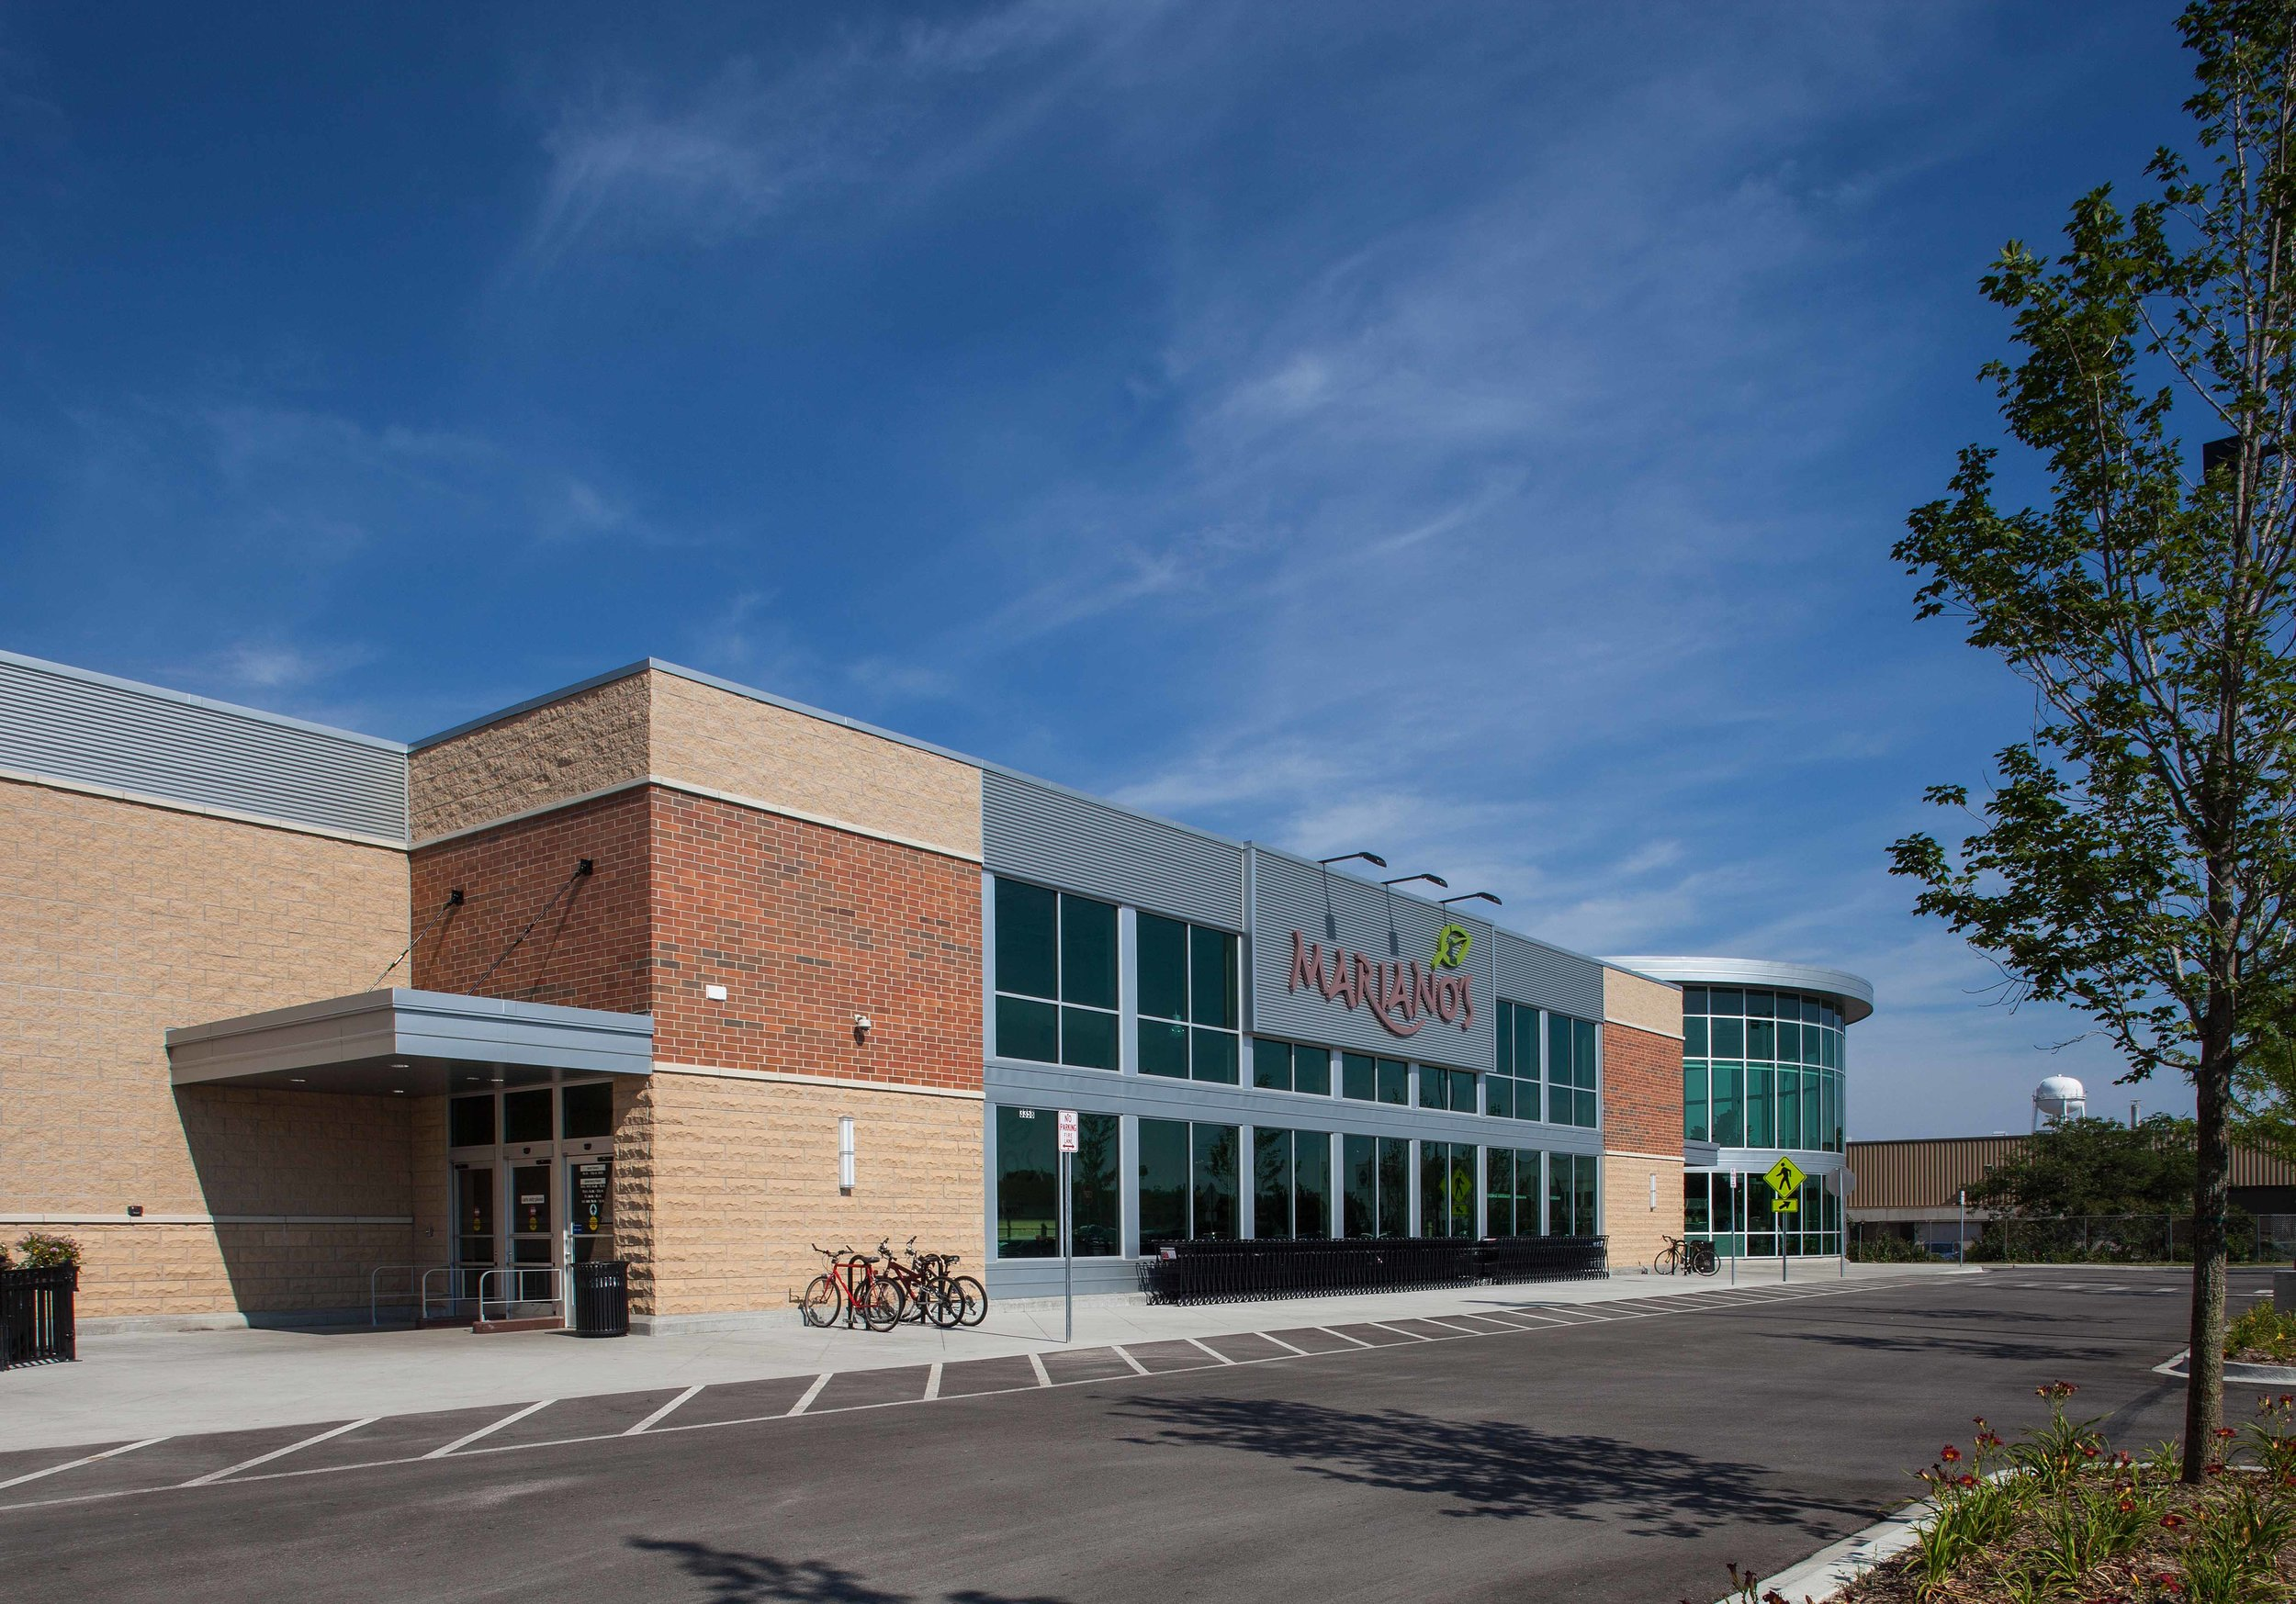 Skokie Commons - Lambros Photo Shoot - 07.31.2015 - 08.04.2015 - 5.jpg